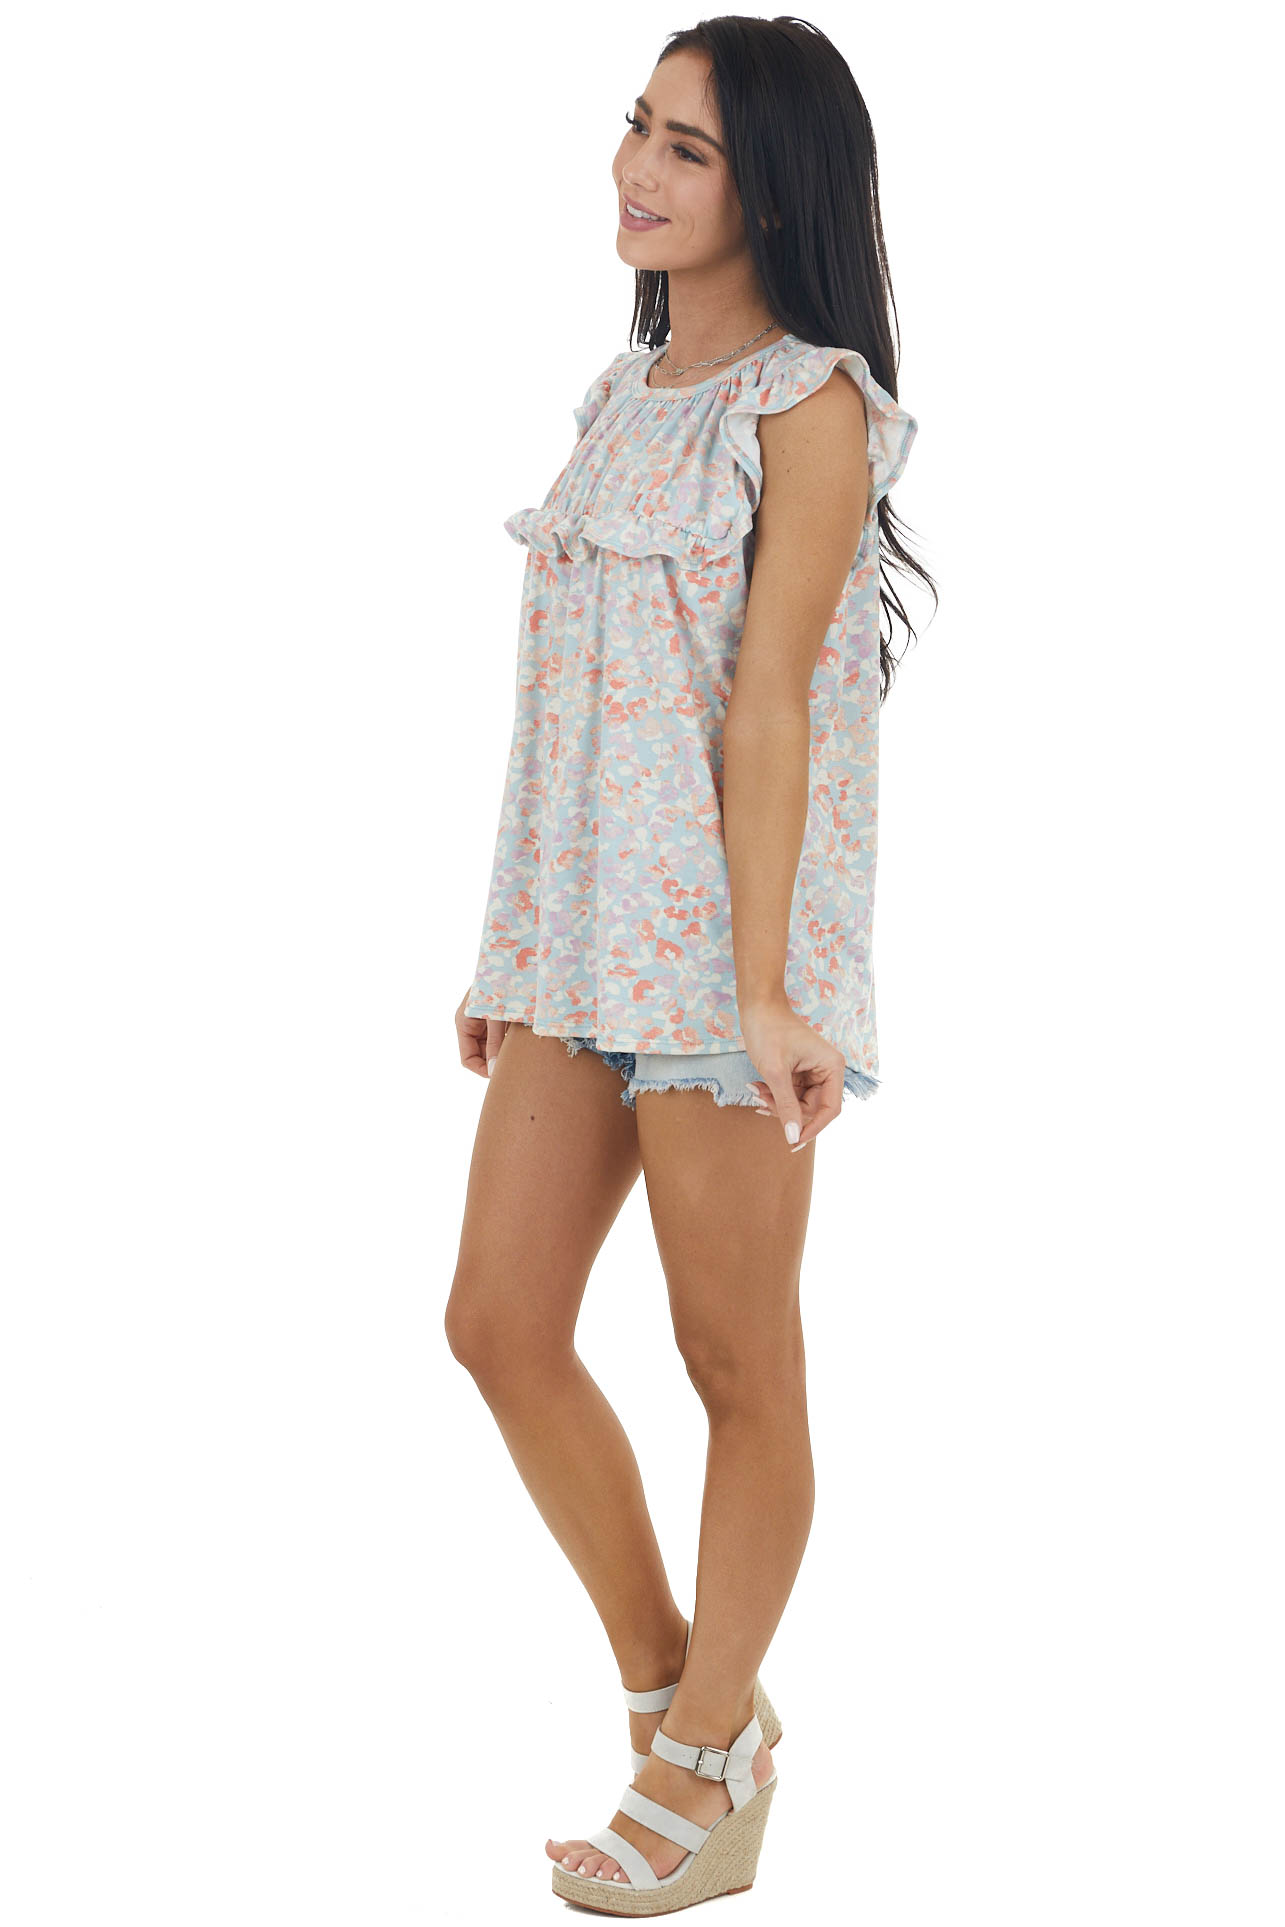 Sky Blue Leopard Print Babydoll Top with Ruffle Details